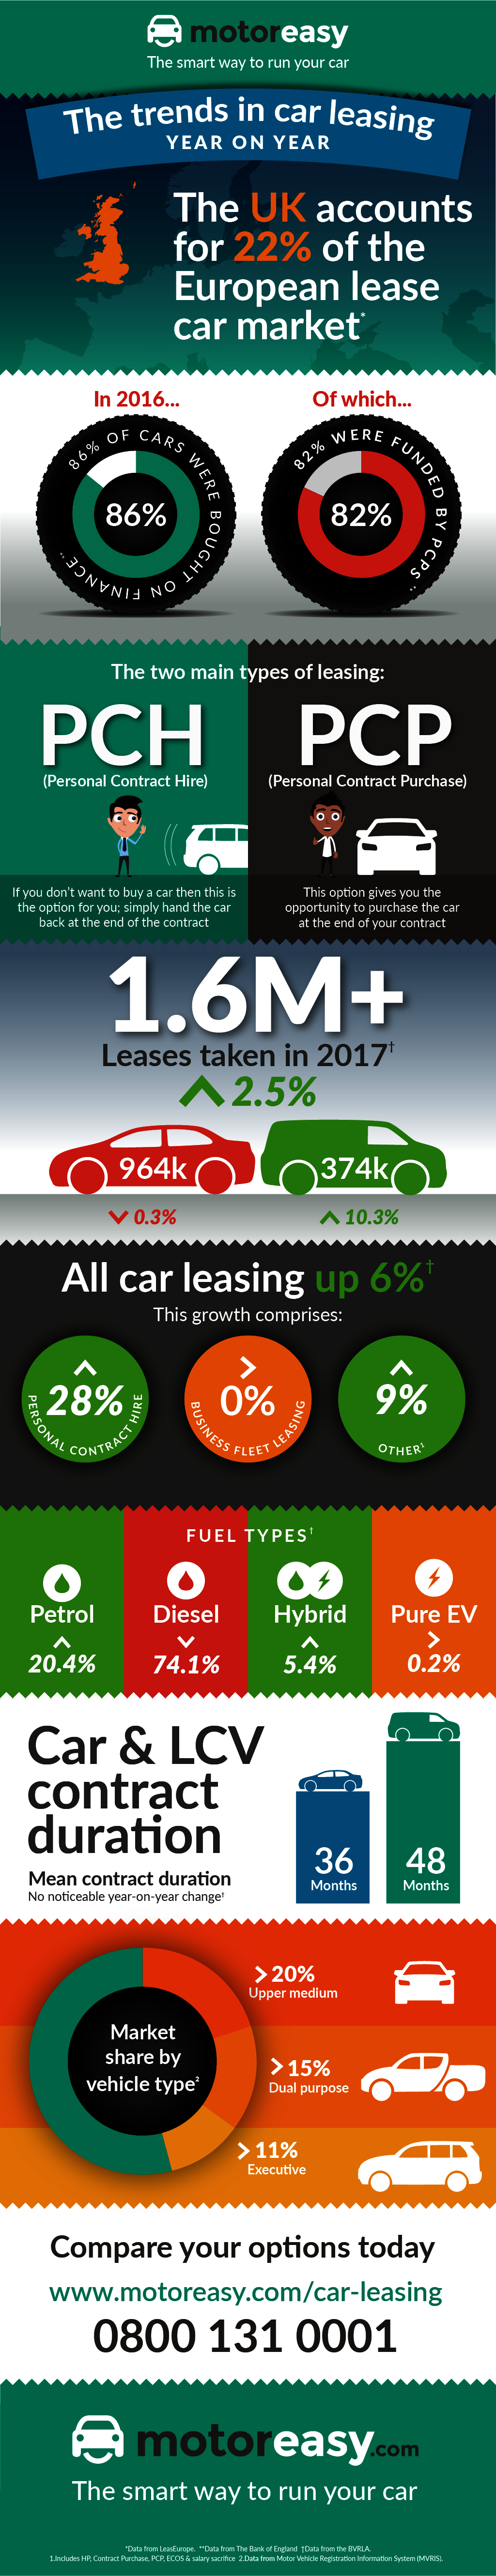 Car Leasing Comparison Infographic with Facts about Leasing PCP PCH